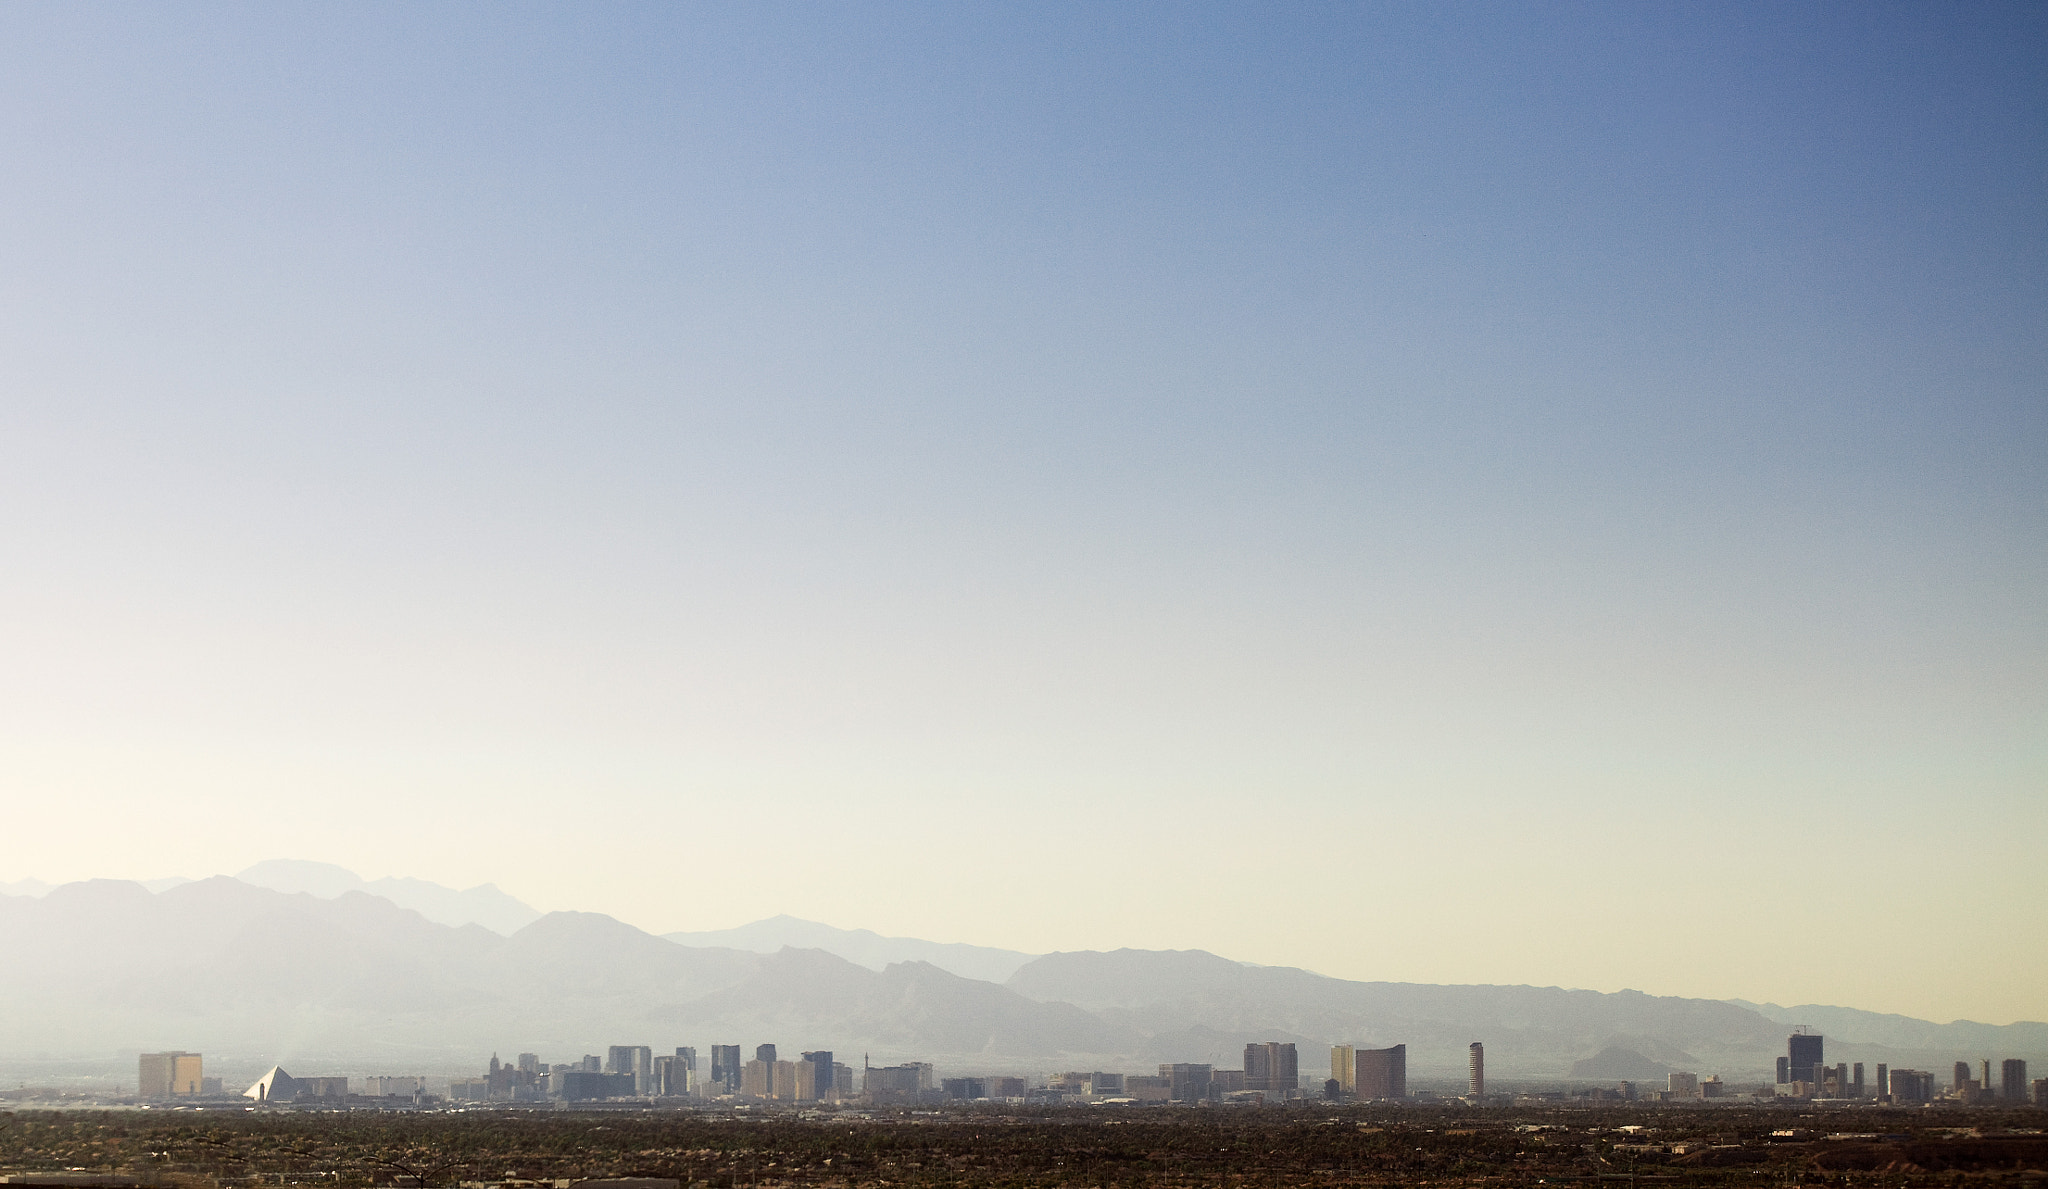 Photograph The Las Vegas Strip by Brian Butler on 500px